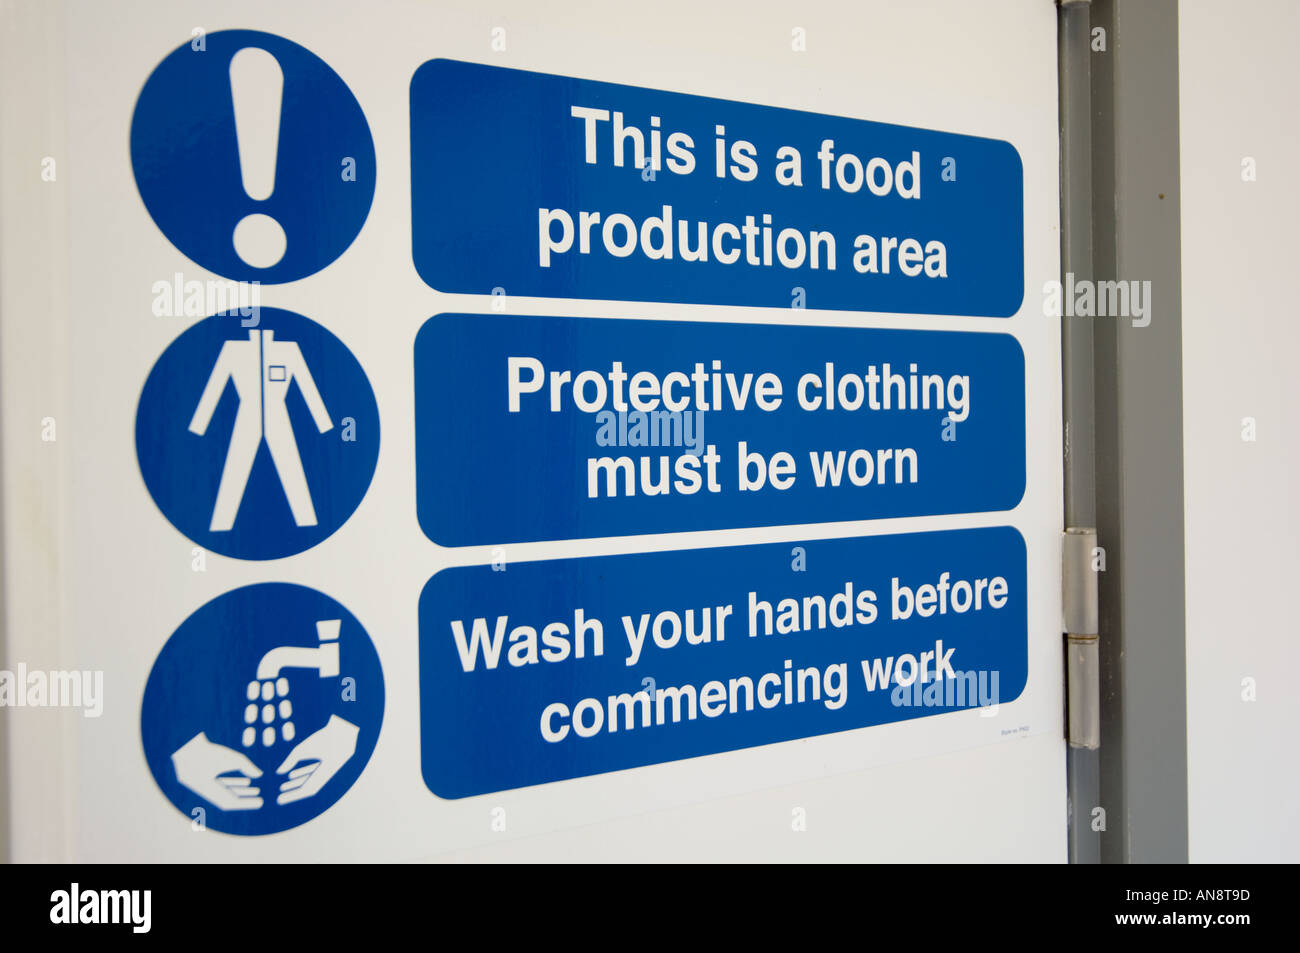 food production area warning signs - Stock Image